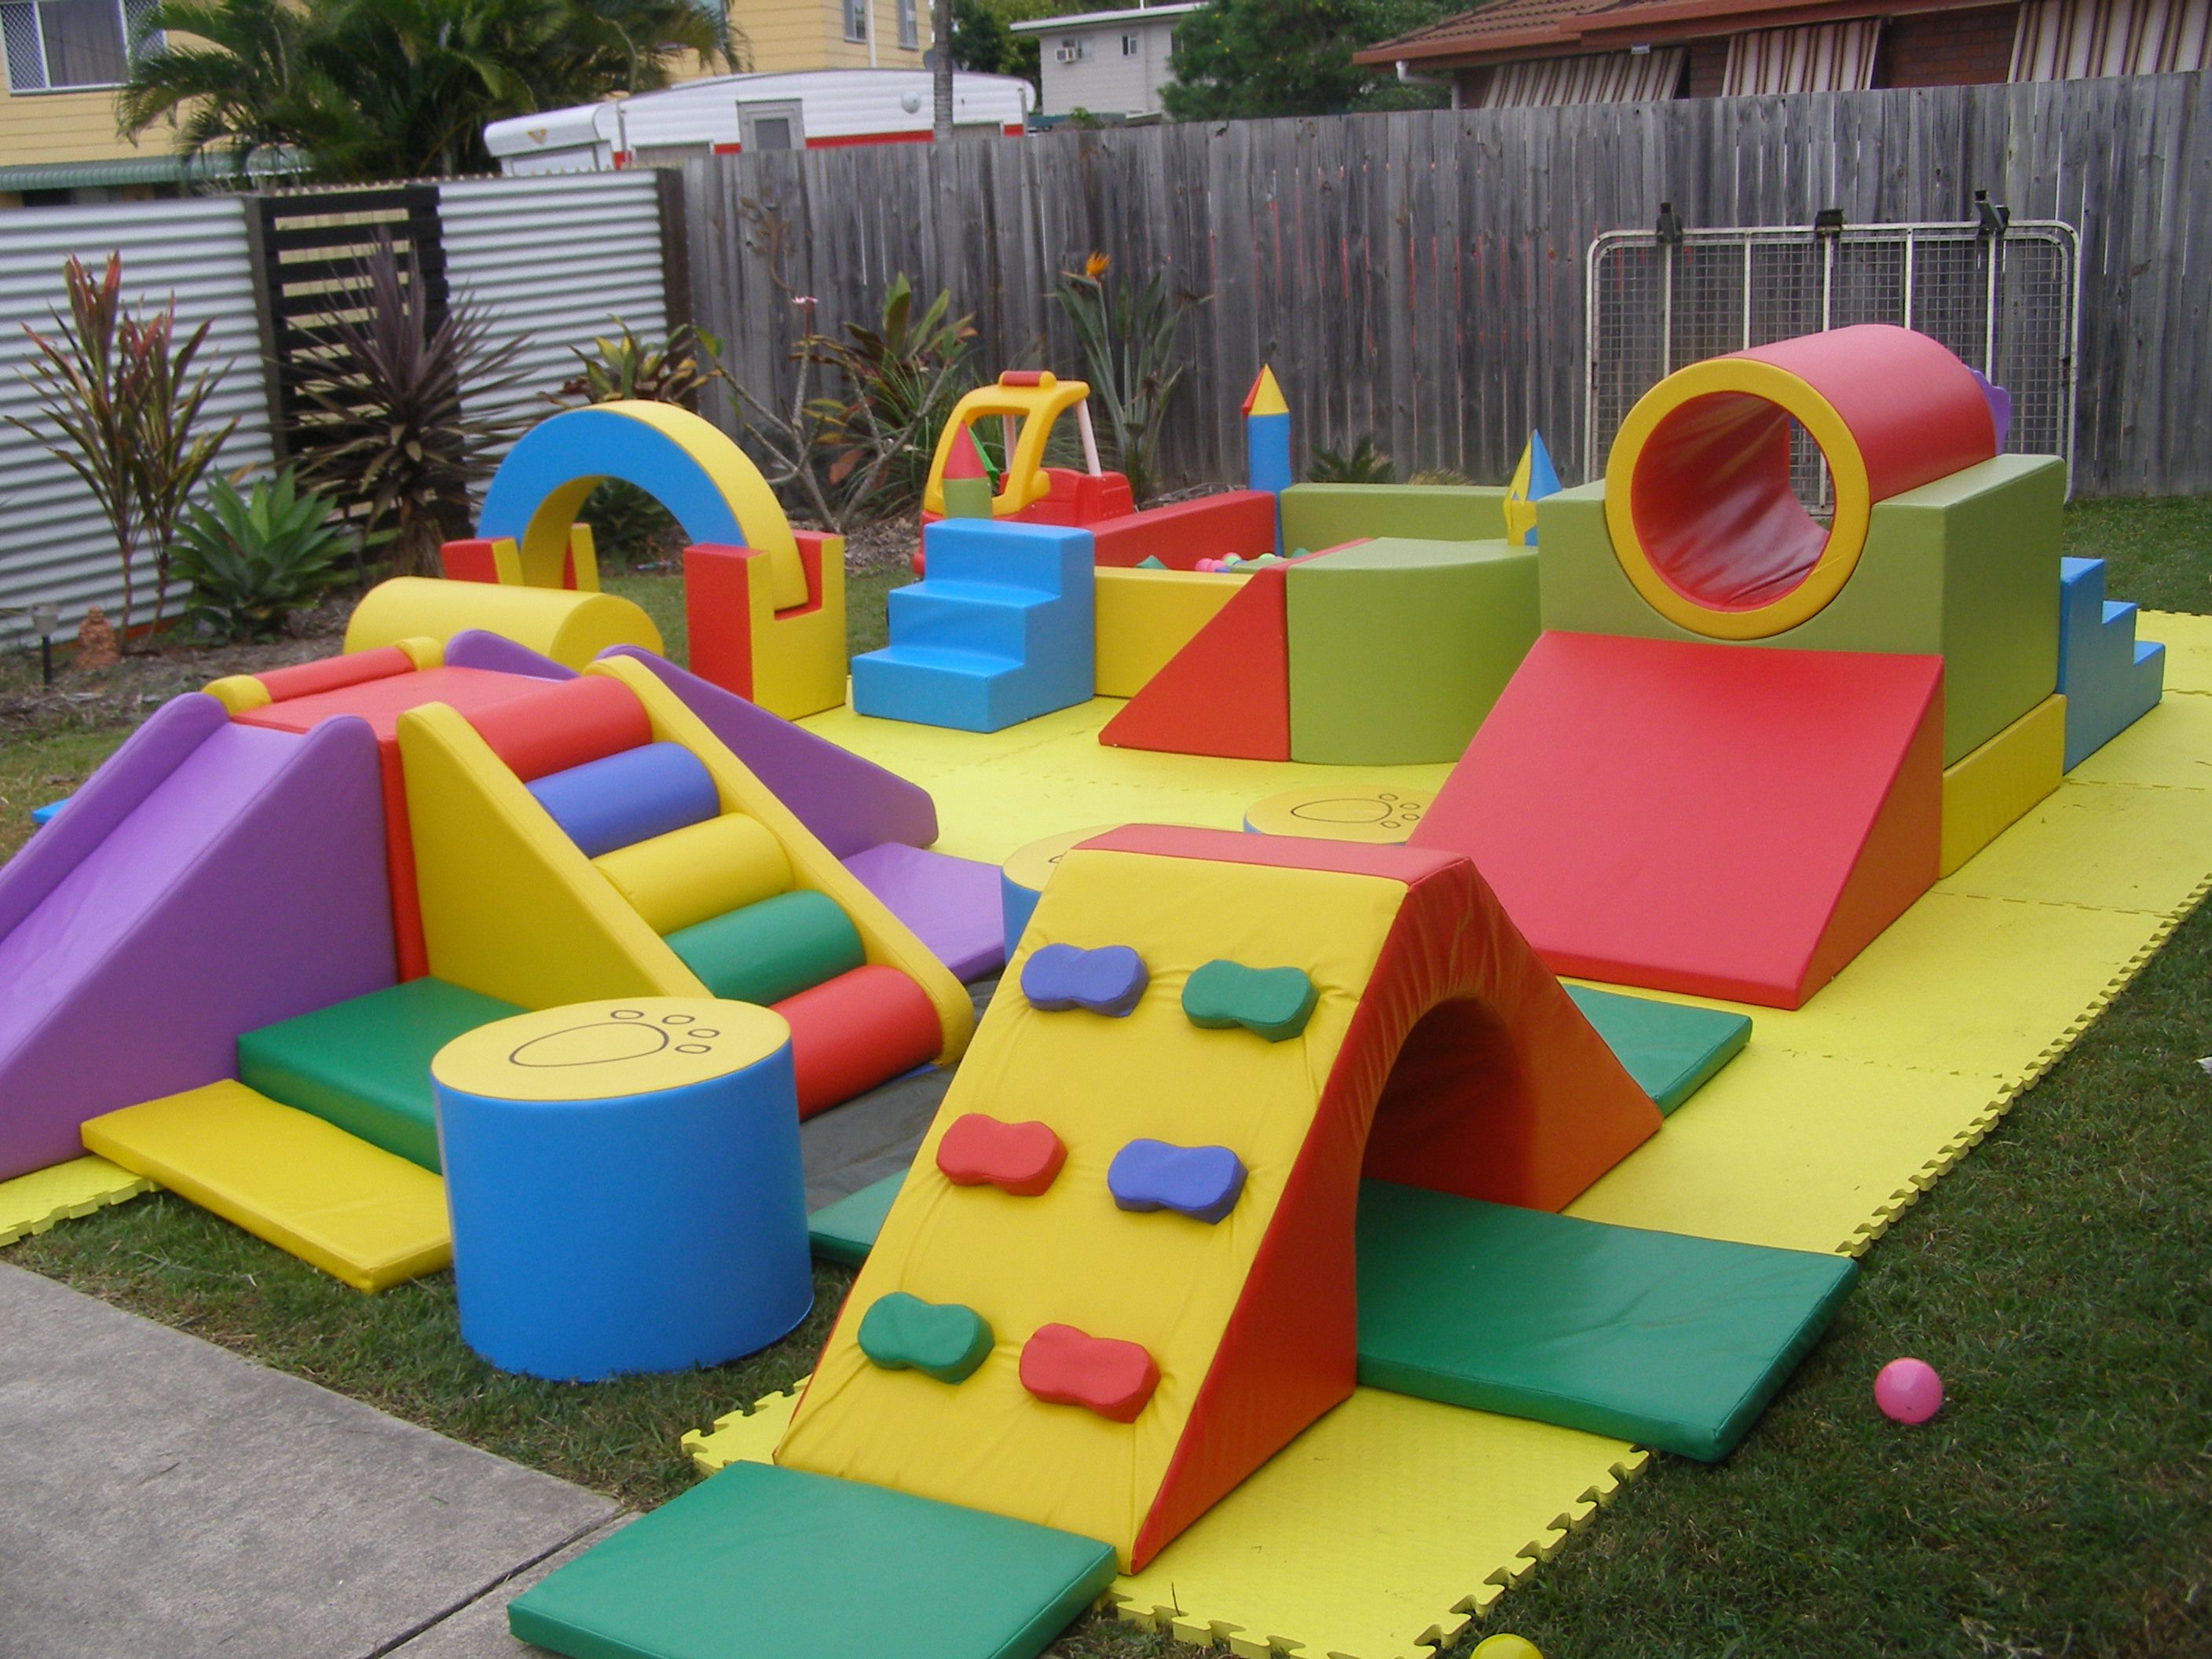 Using cushion to build a playground at